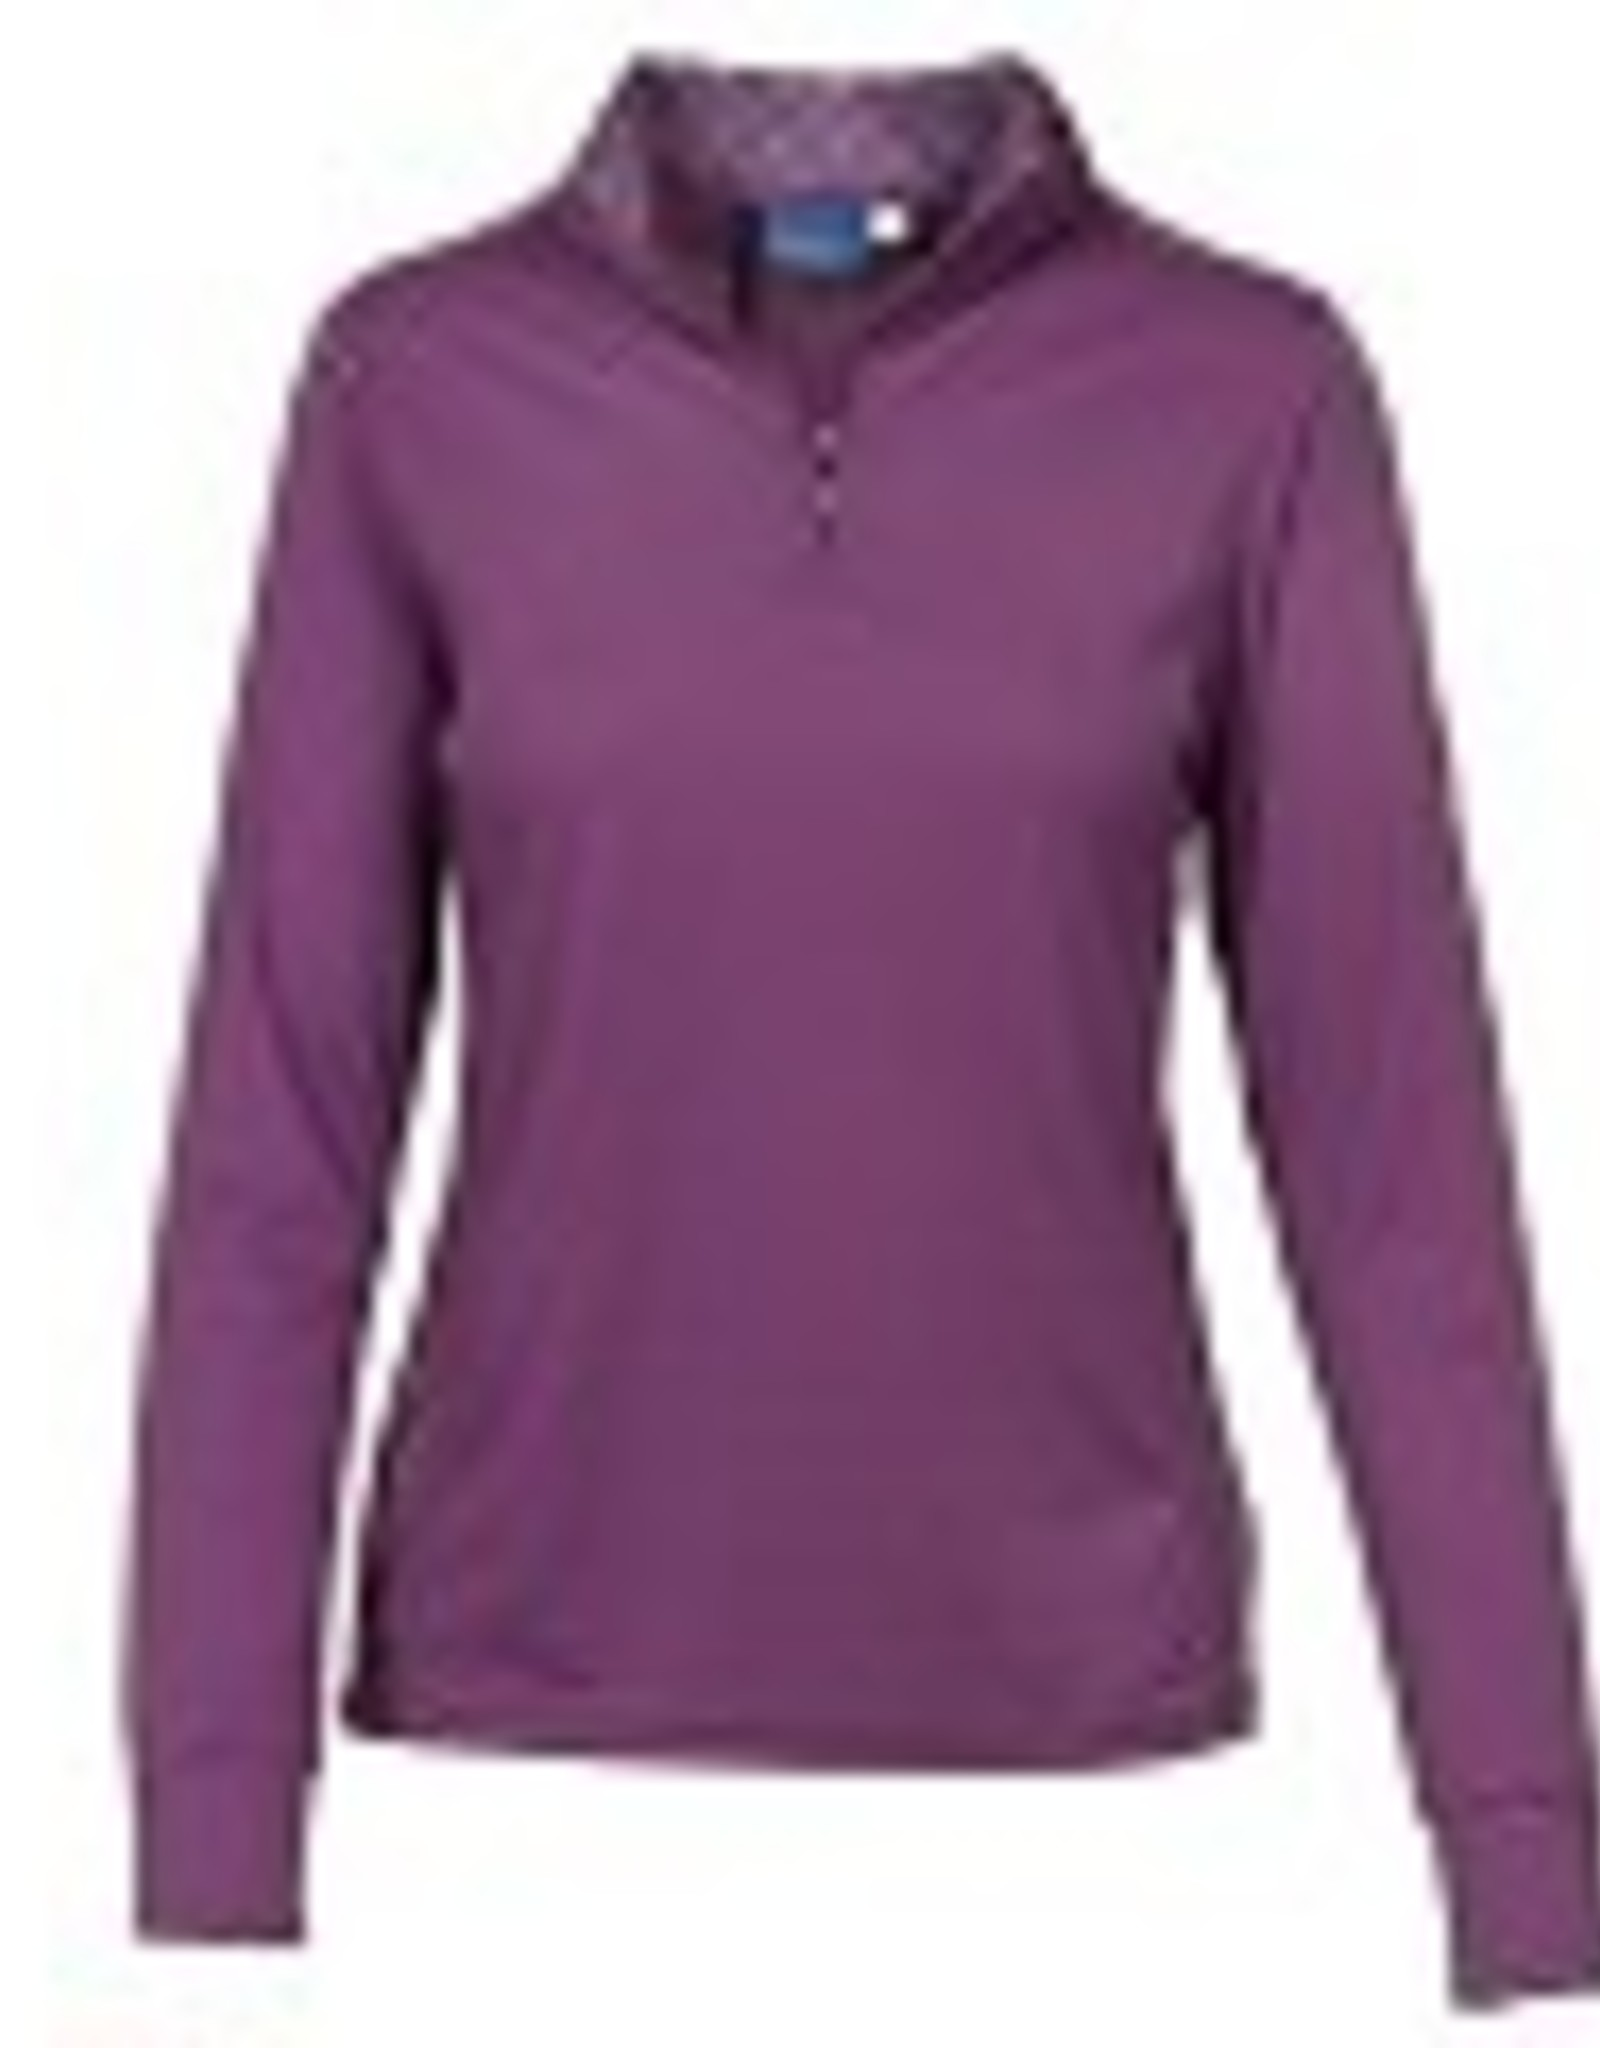 OVATION Chd CoolRider UV Tech shirt